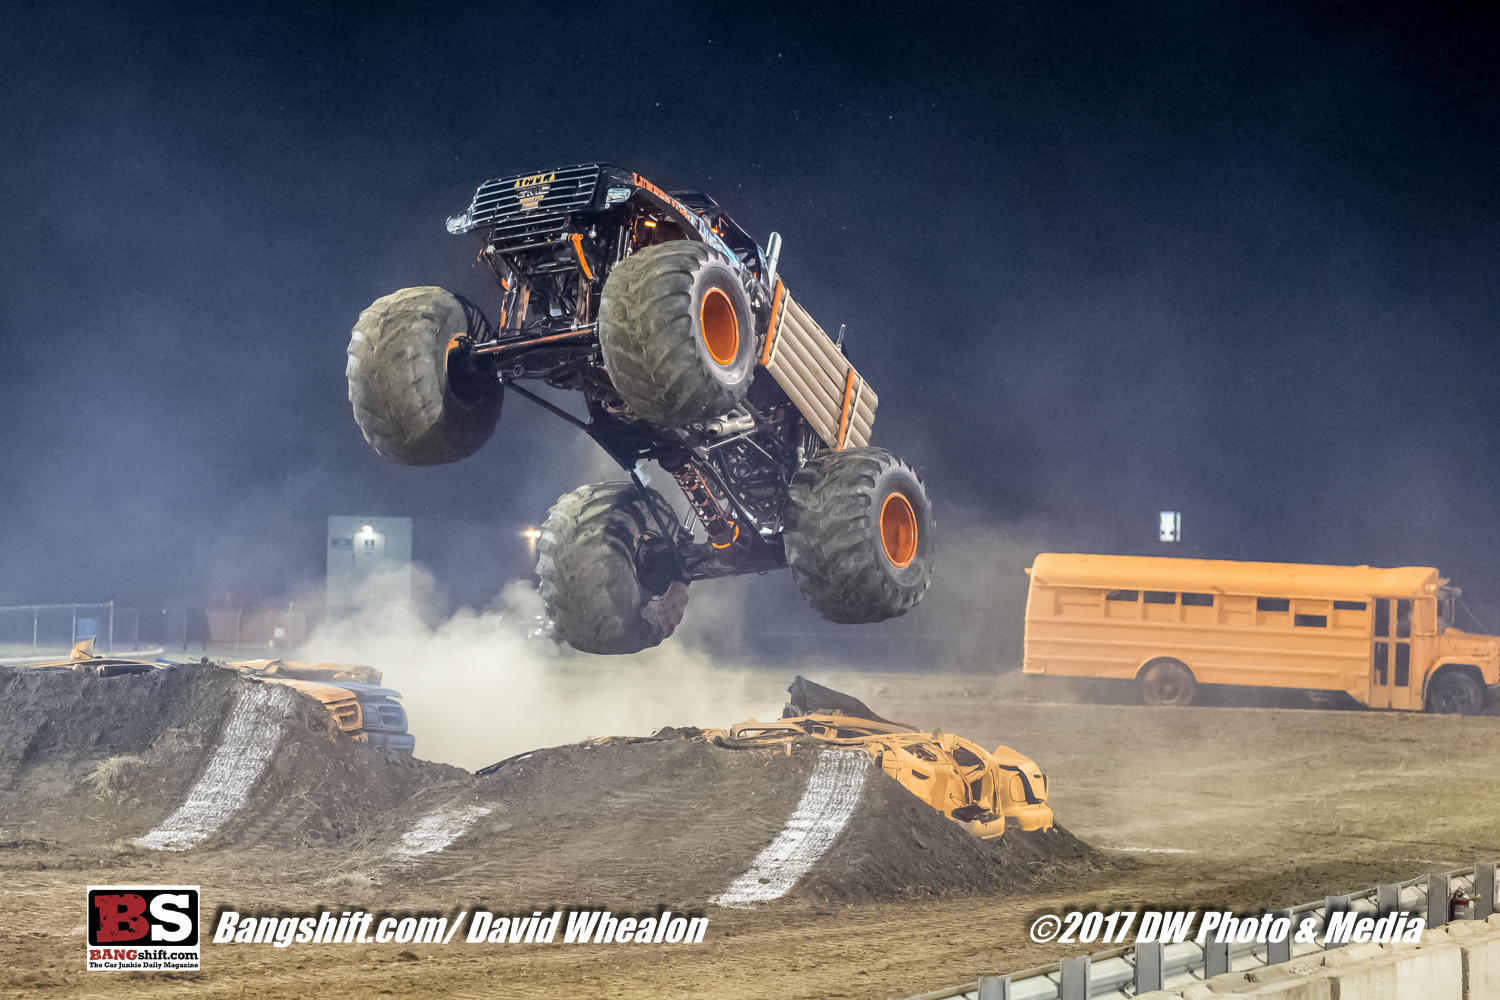 Monster Truck Action Coverage From GALOT Motorsports Park's Monster Truck Throwdown Event